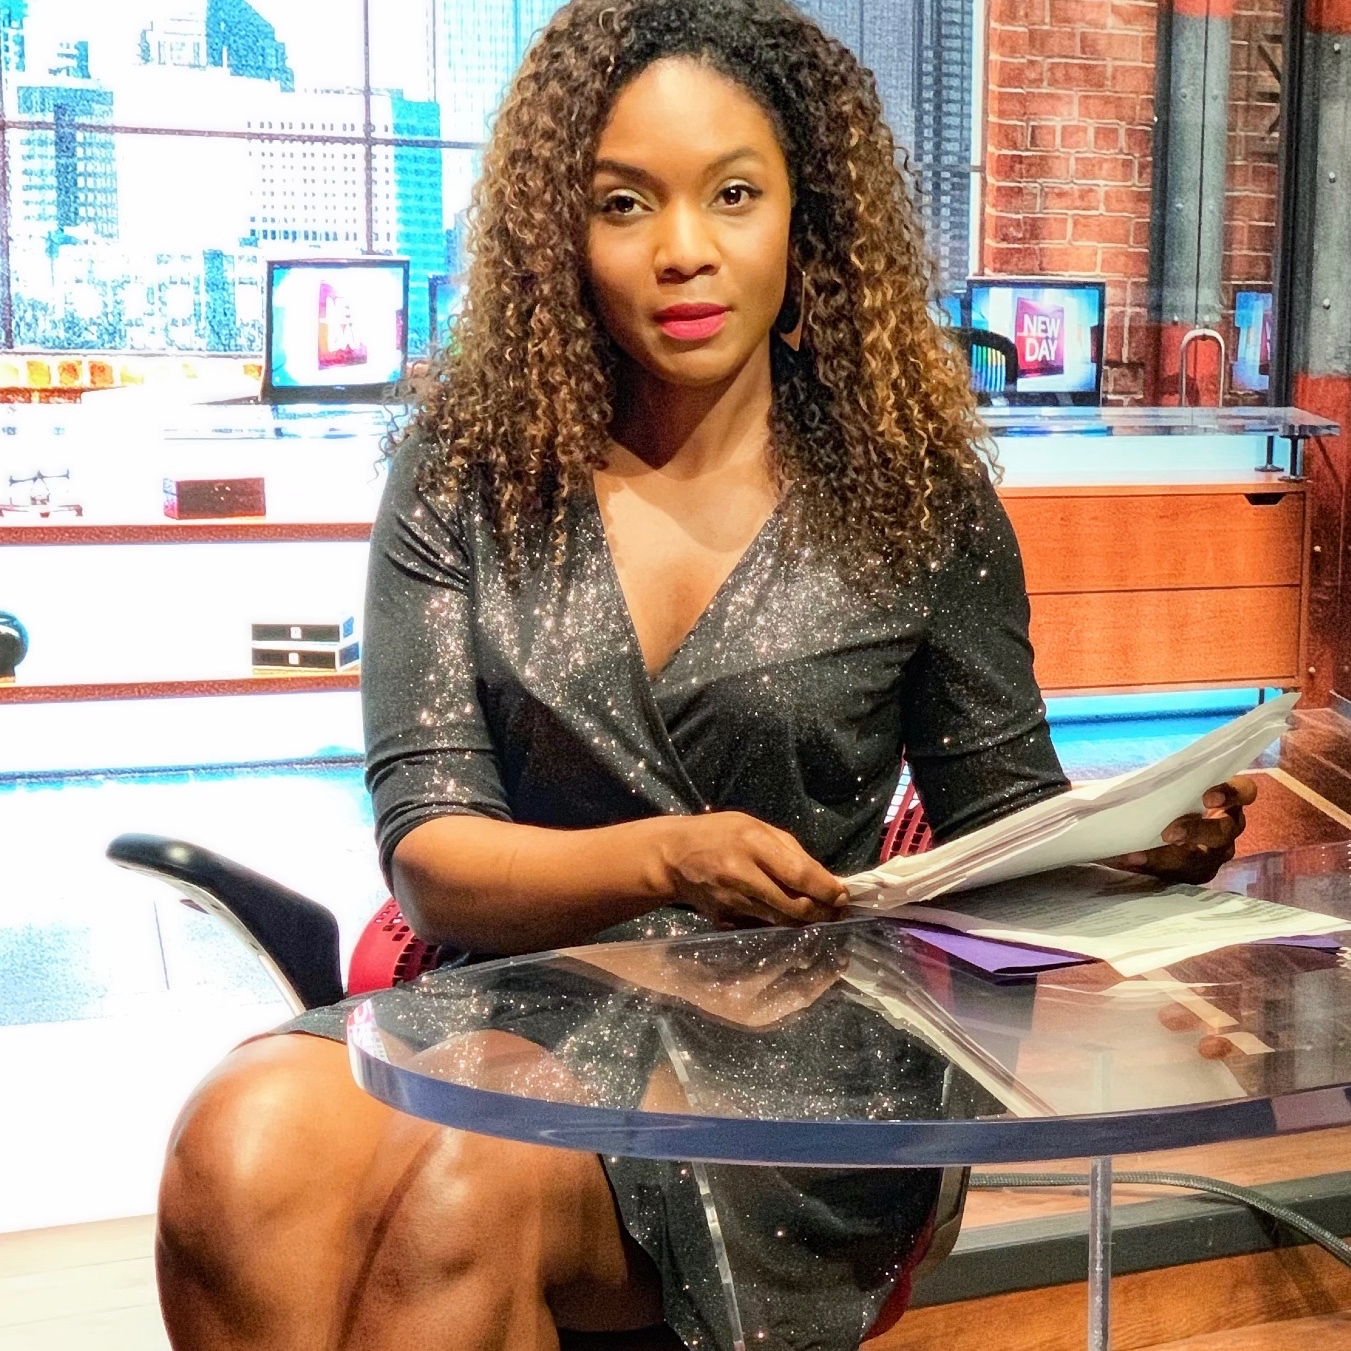 TV PRODUCER - Her story marries Cinderella with The Devil Wears Prada. Tamisha Harris. One of the most intriguing and sought after television producers in media today.